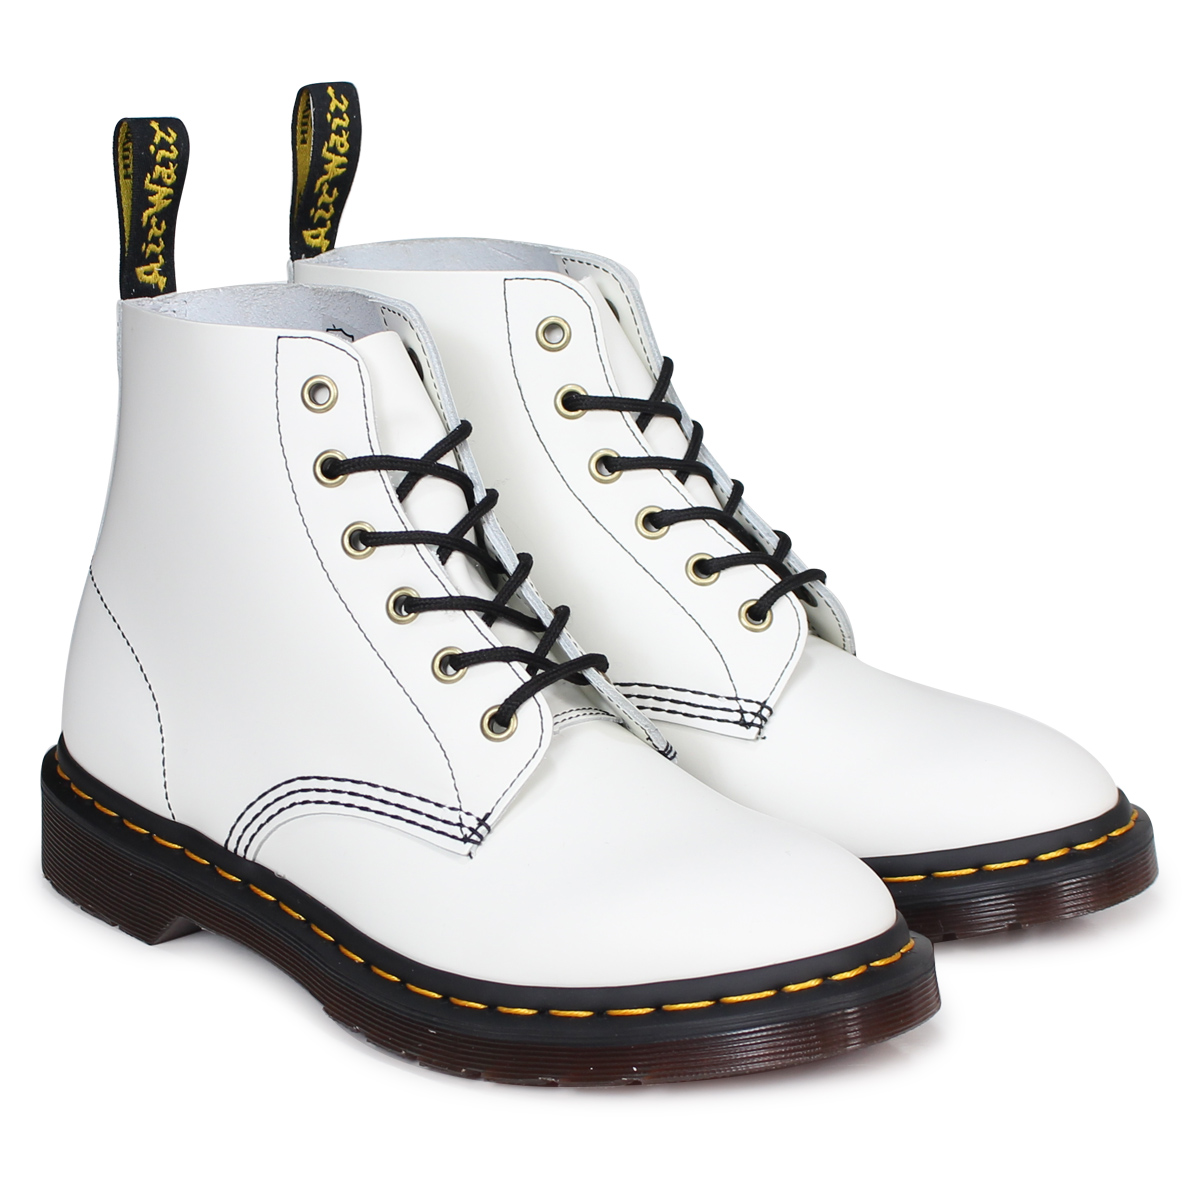 d46852a9d An image of the work boots is strong, but suggests various casual shoes  including sandals and sneakers.